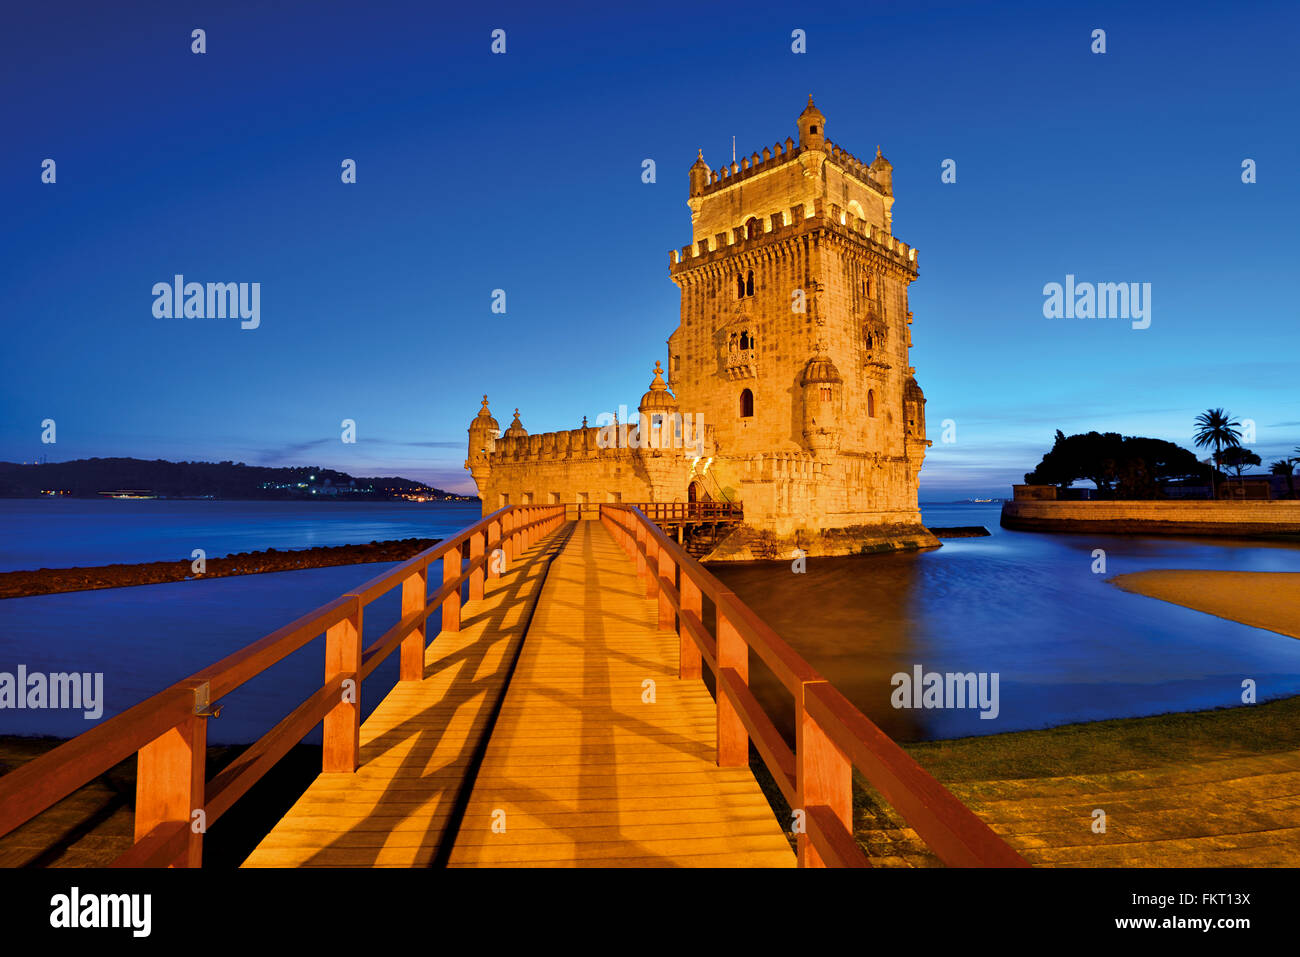 Portugal, Lisbonne : tour monumentale de Belém par nuit Photo Stock